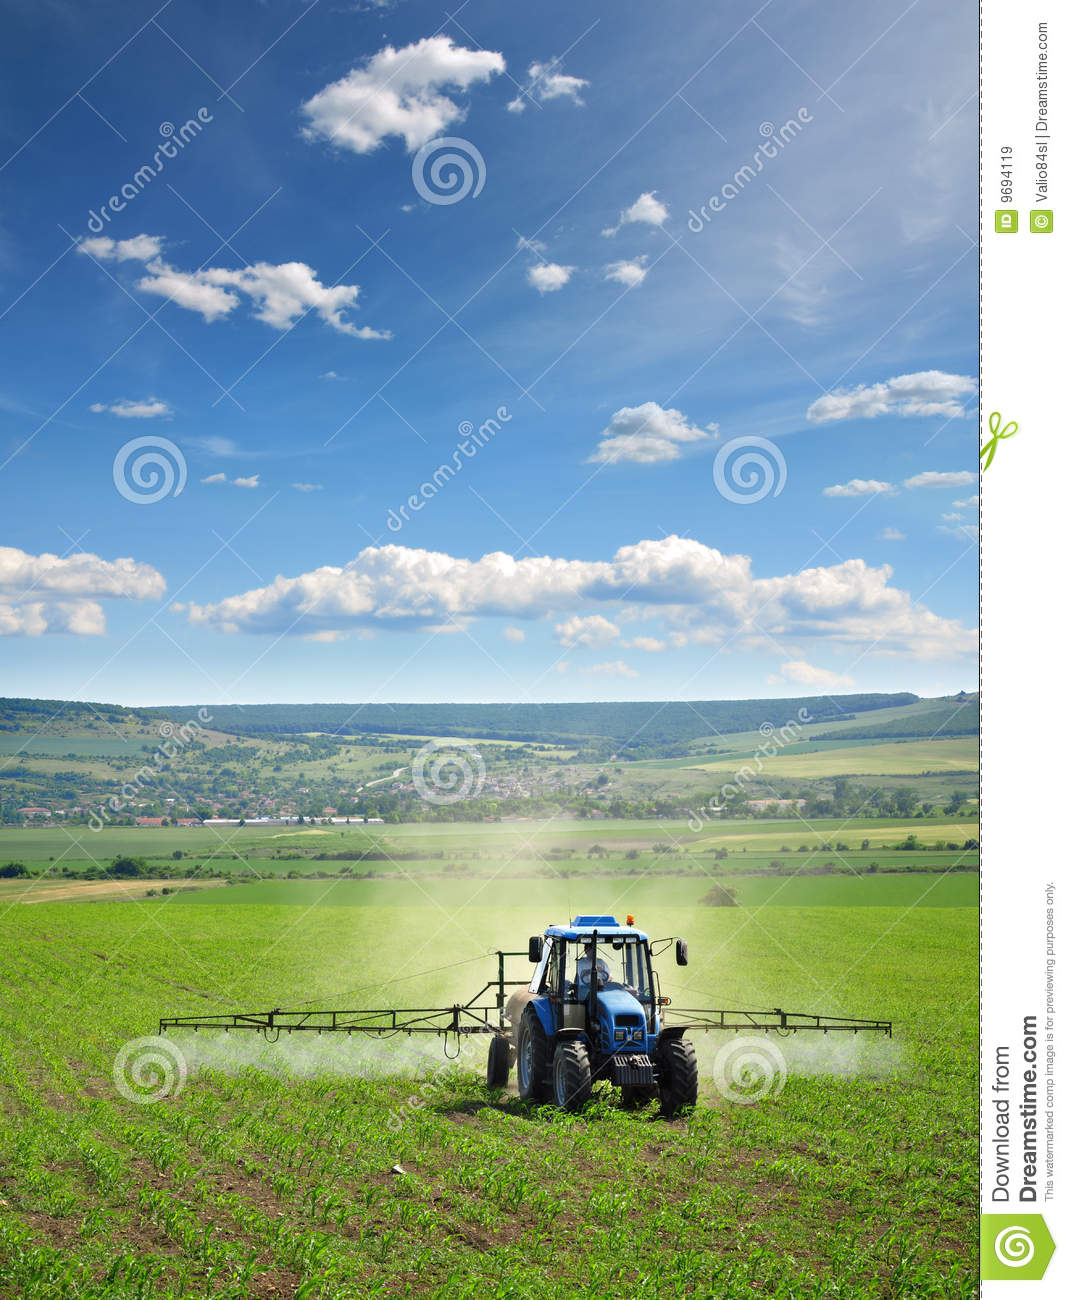 Farming tractor plowing and spraying on field